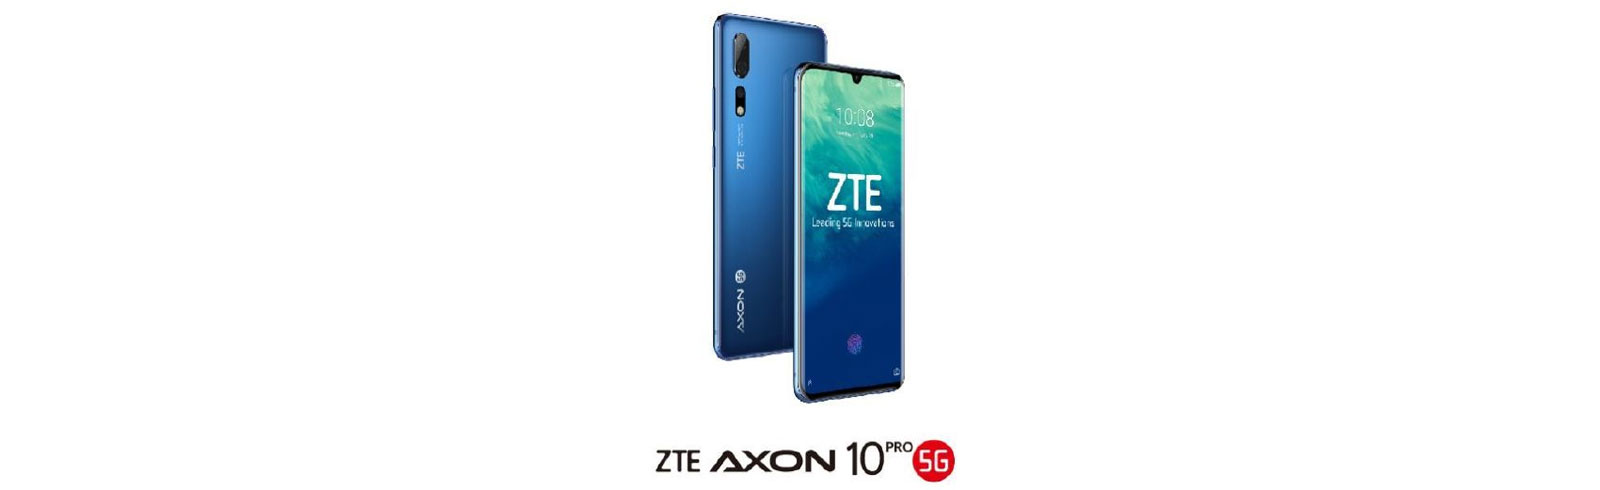 ZTE will release the Axon 10 Pro 5G on May 6 in China